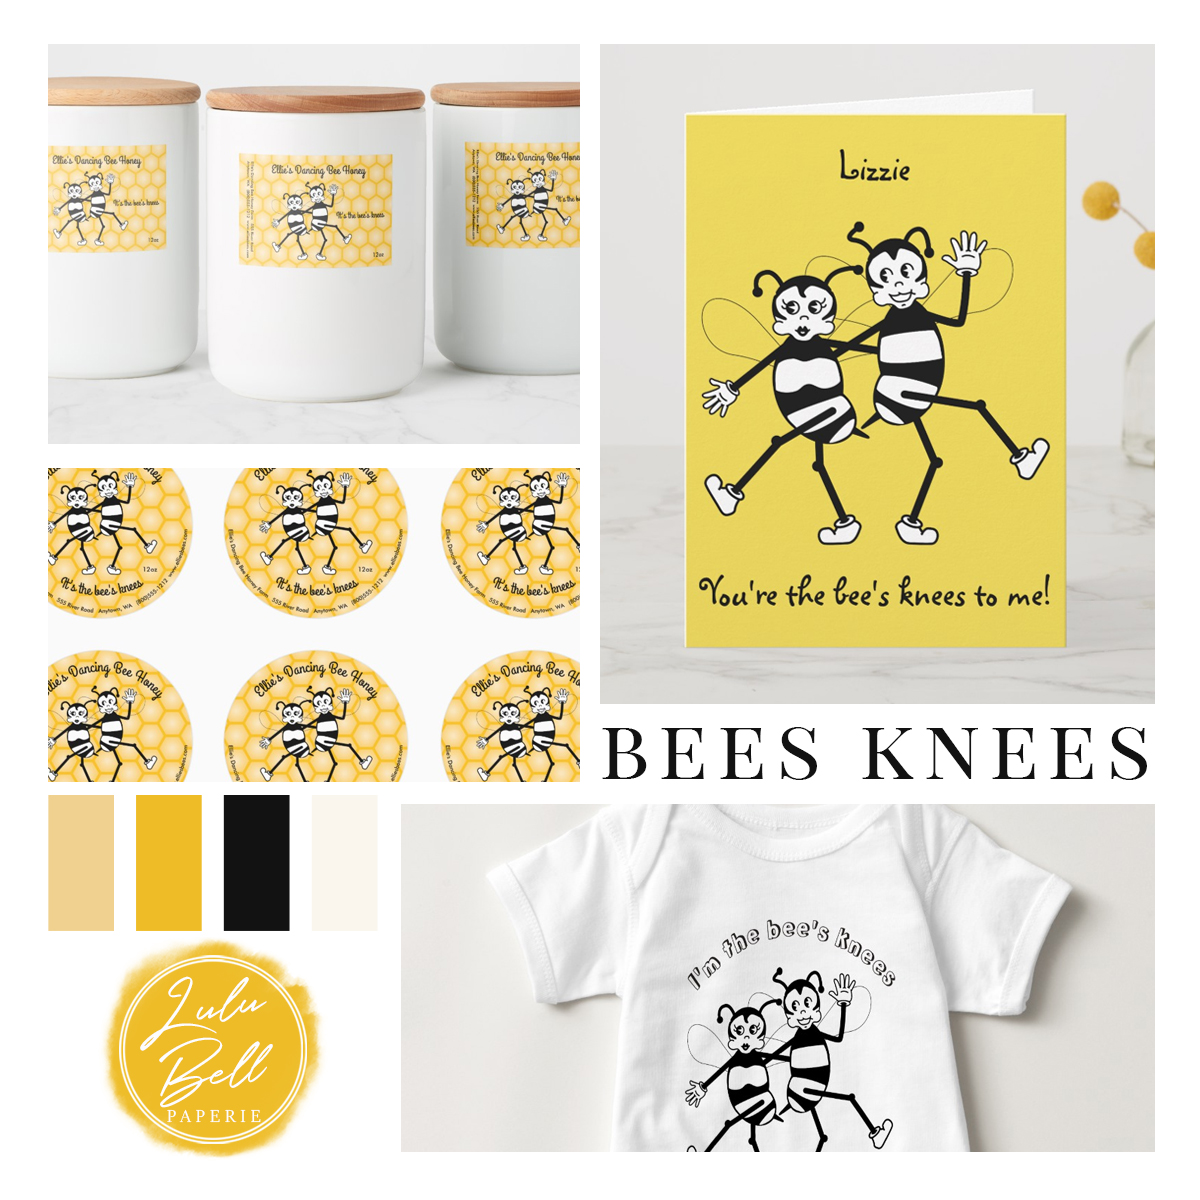 Retro dancing black and white bees and yellow honeycomb patterned background. On honey jar labels, stickers, greeting cards, and apparel. It's the bees knees! In black amber and yellow color palette.